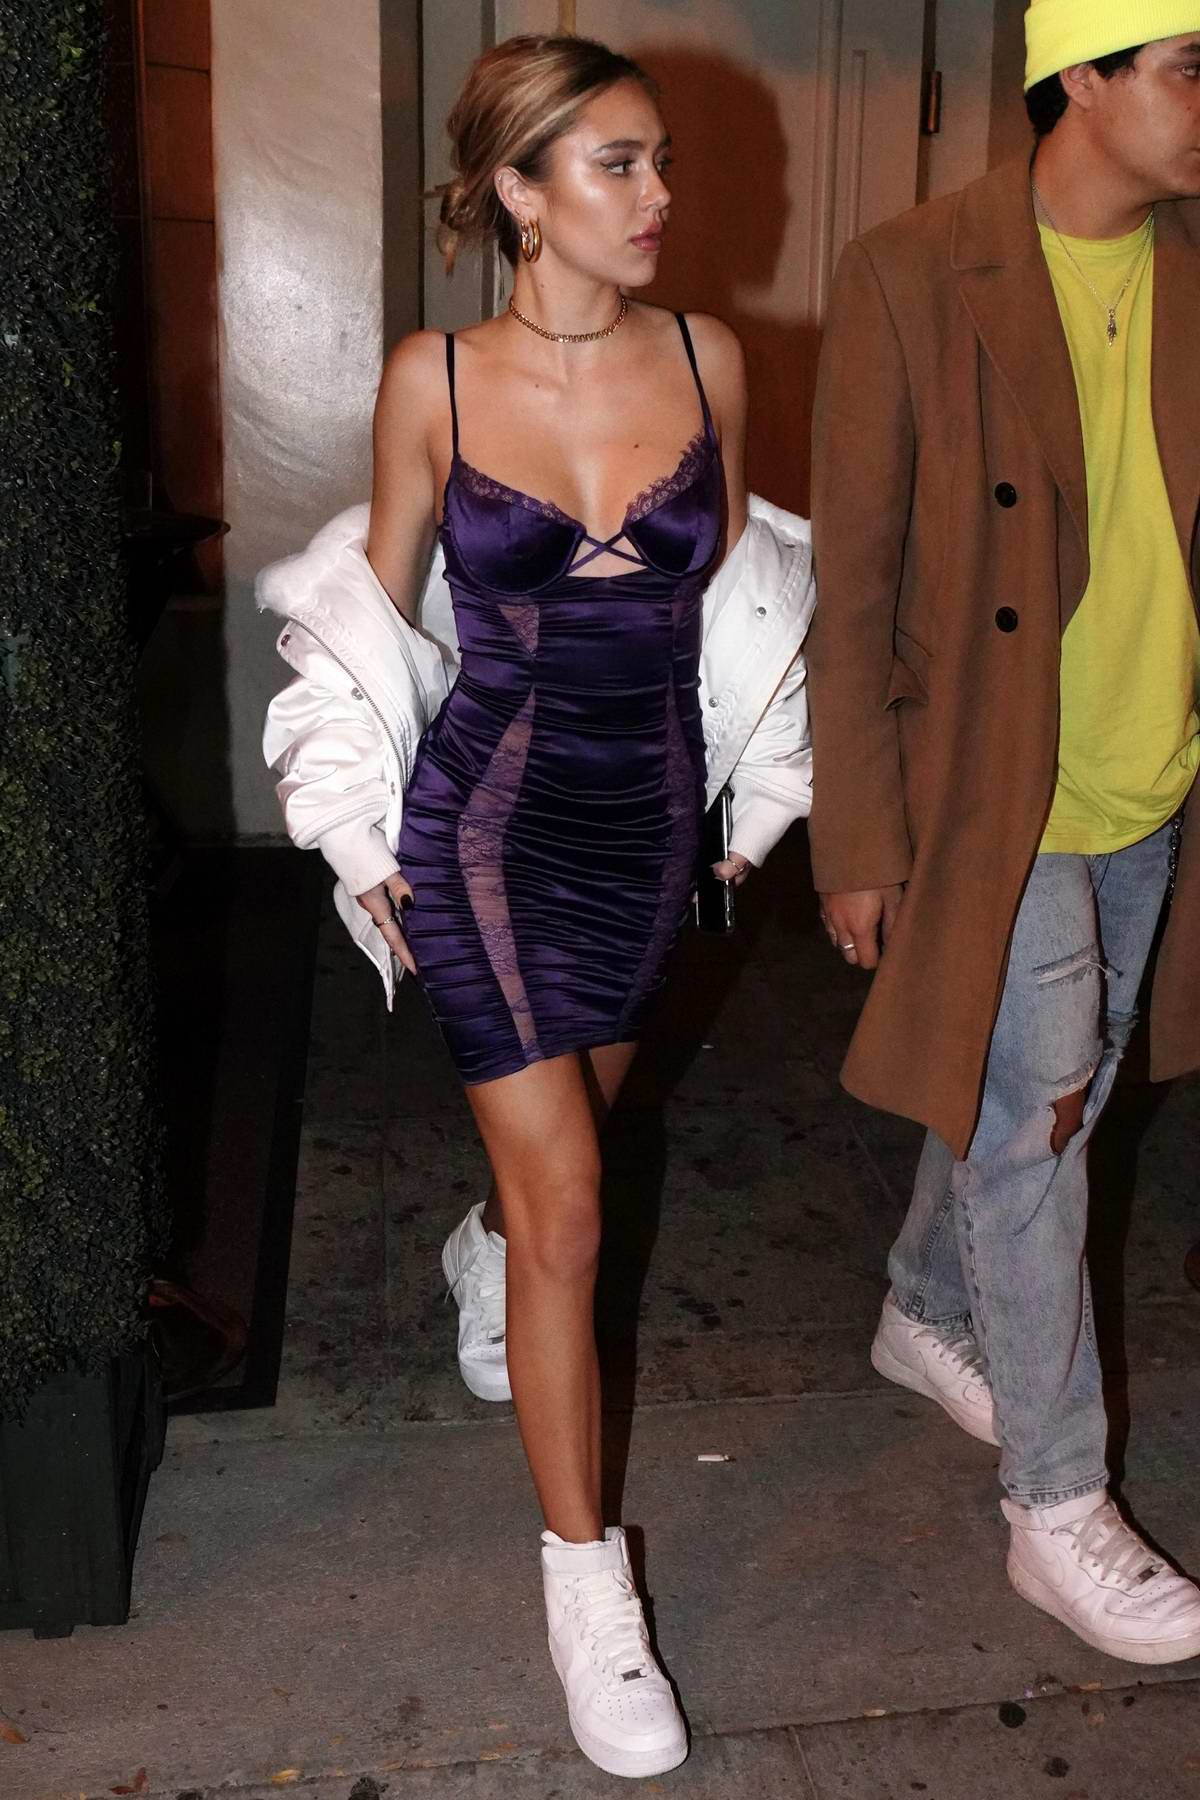 Delilah Belle Hamlin seen wearing a deep neck purple dress during a night out Delilah Nightclub in West Hollywood, Los Angeles